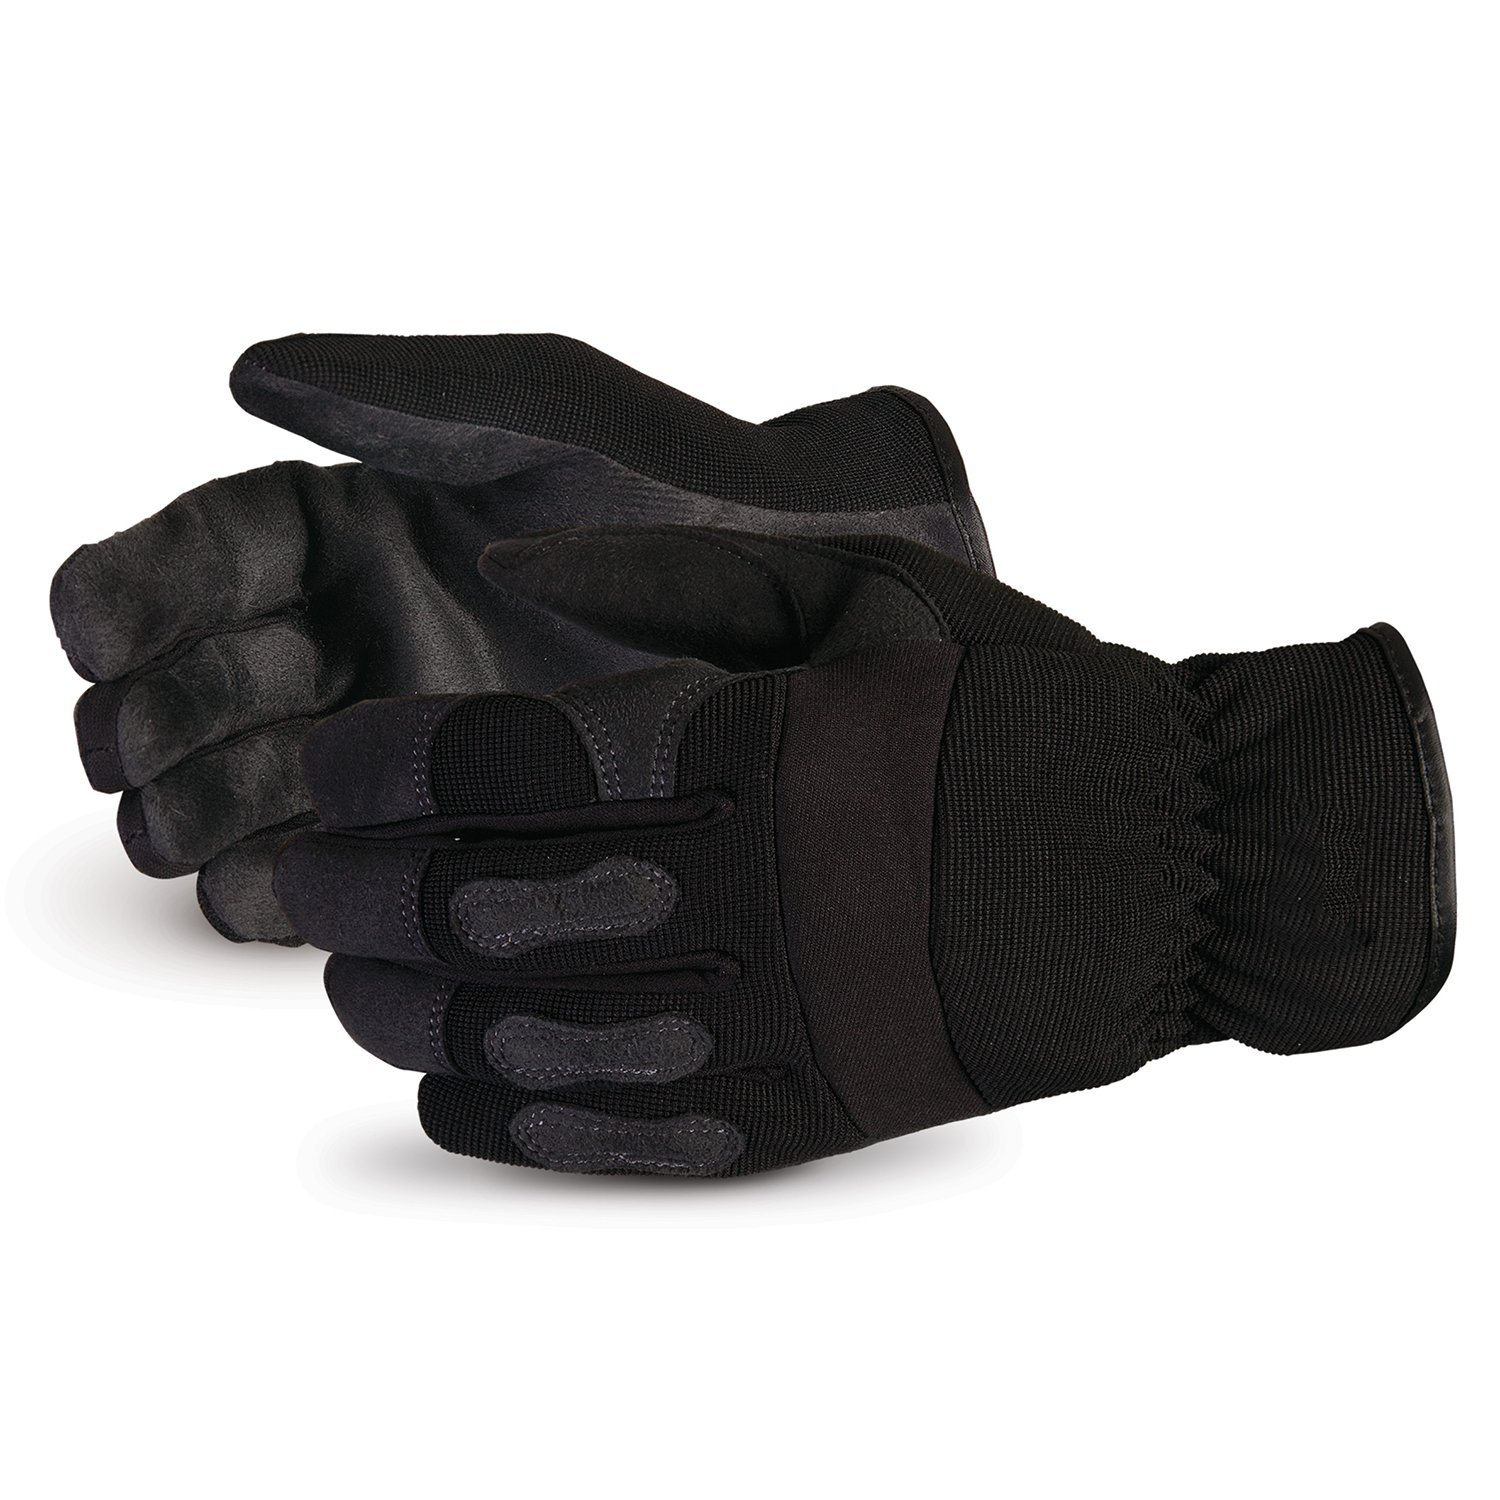 Superior Winter Work Gloves - Black Synthetic Leather with Neoprene for Comfort and Safety (378PLFL) – Size Large